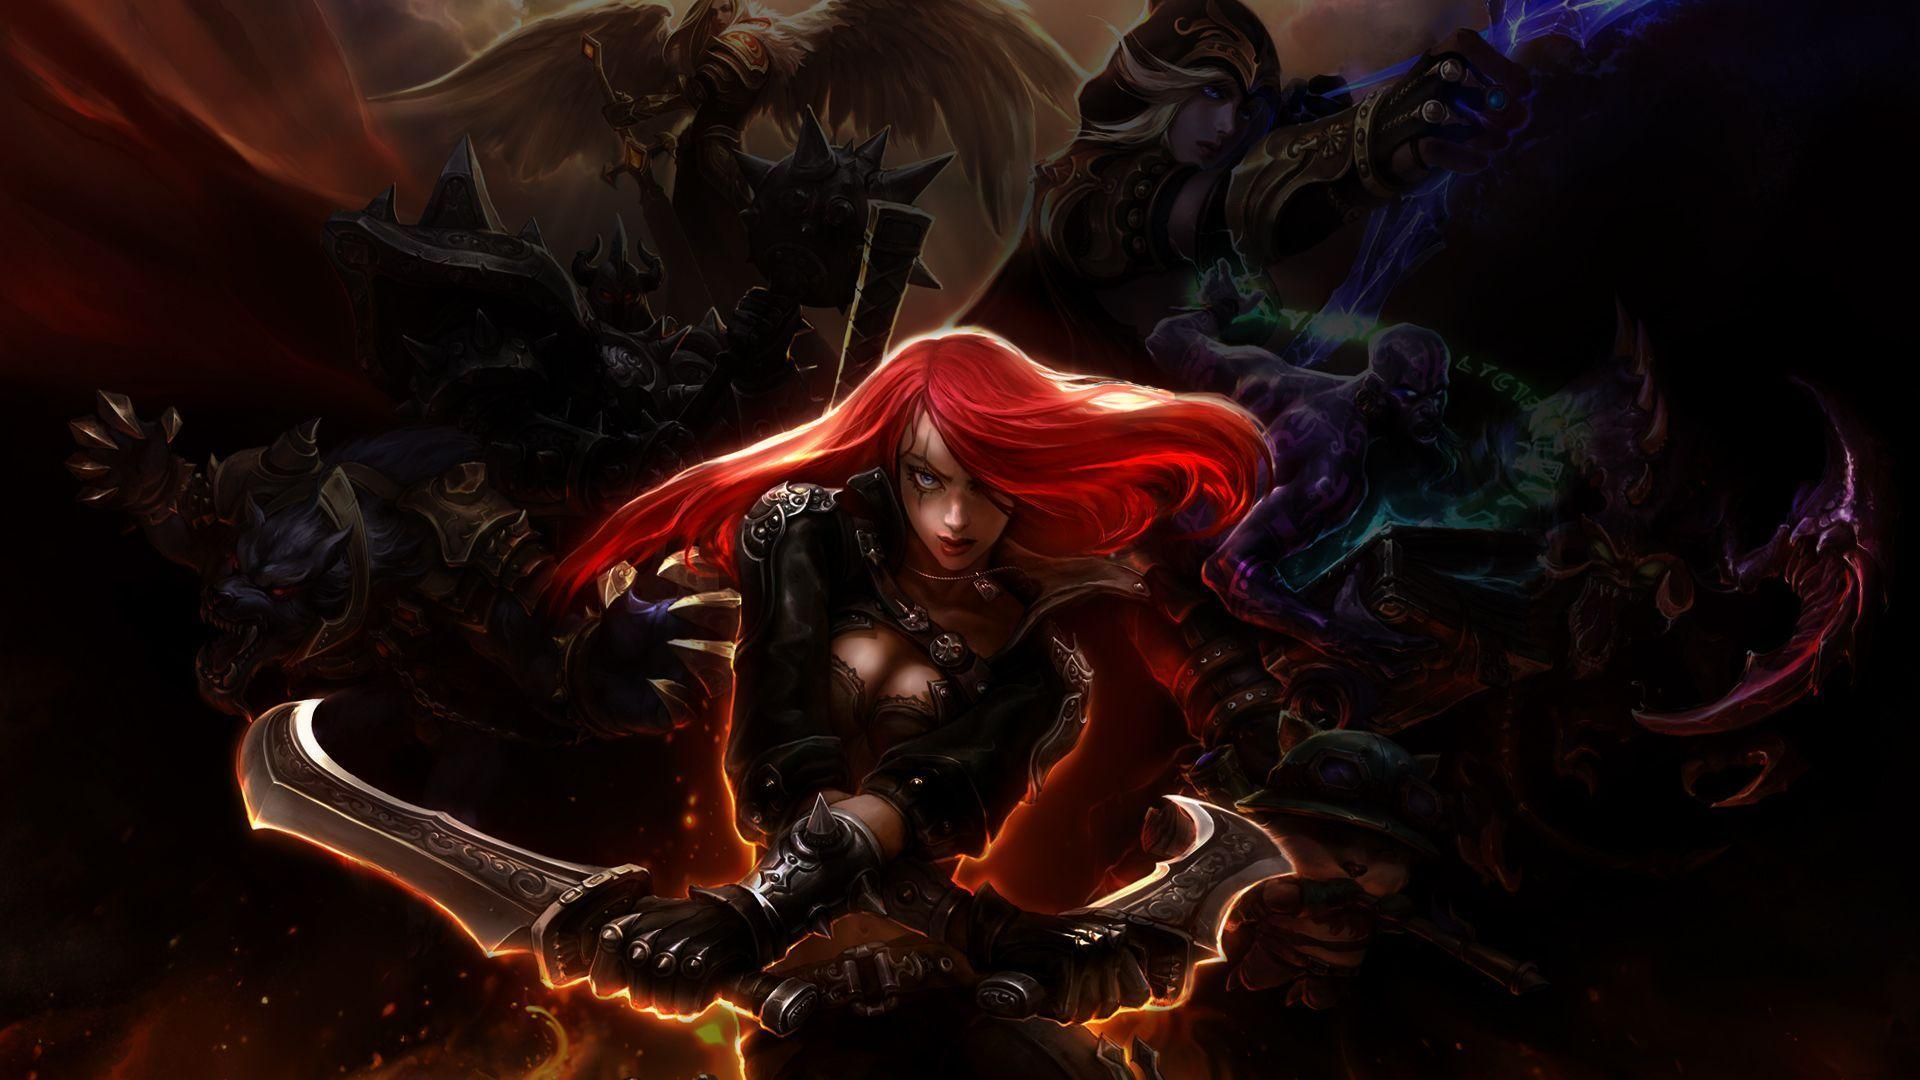 Katarina Lol Wallpaper 4k